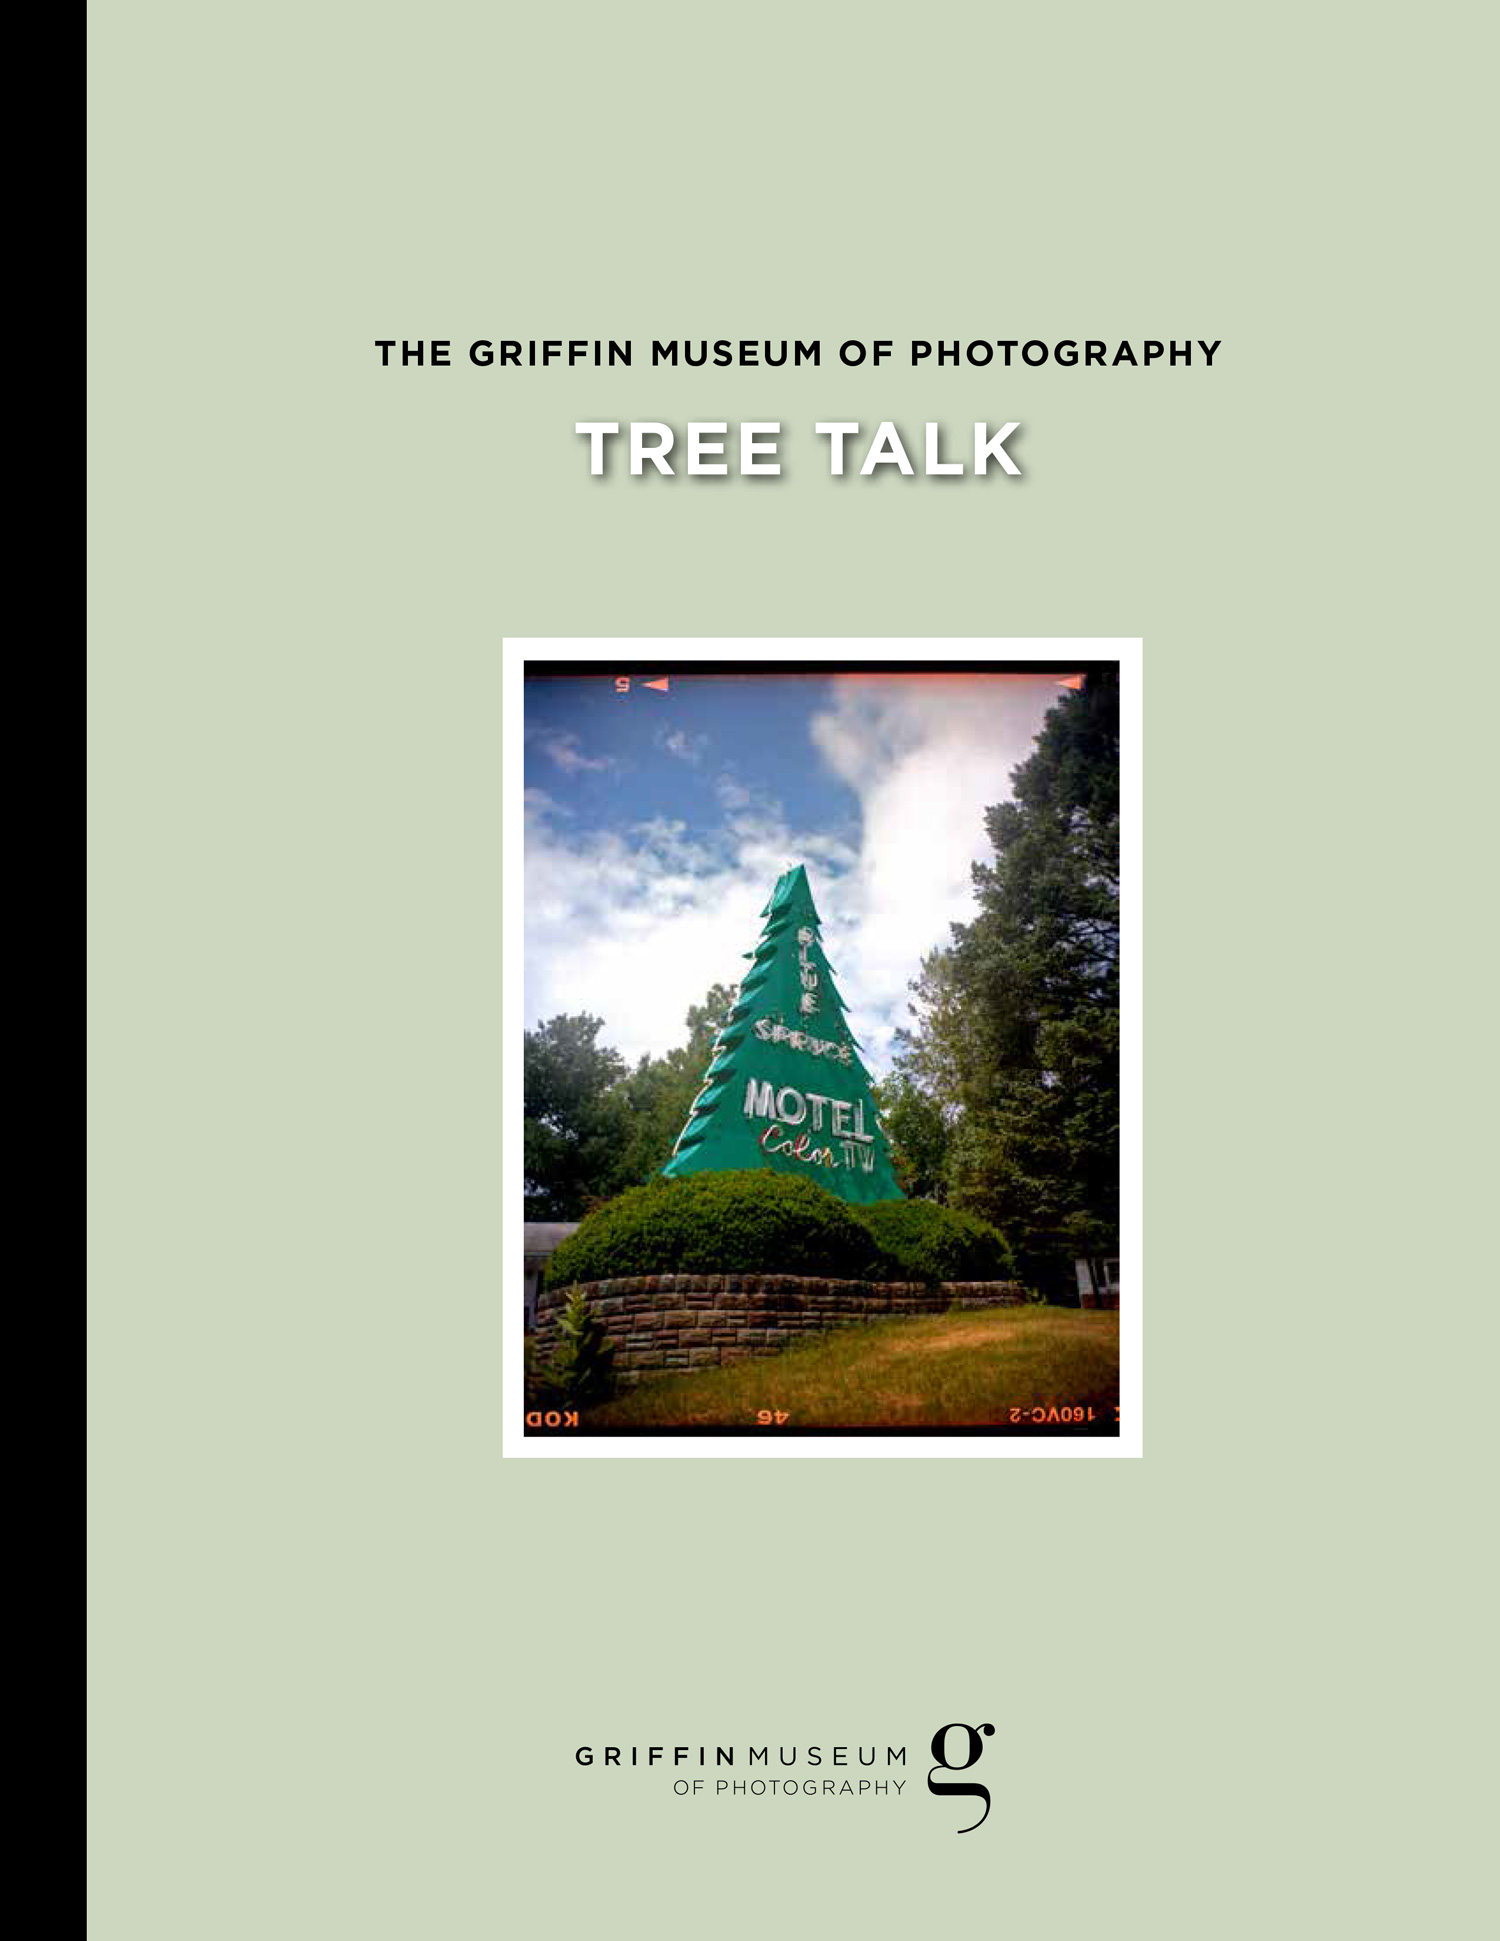 Tree Talk Catalog